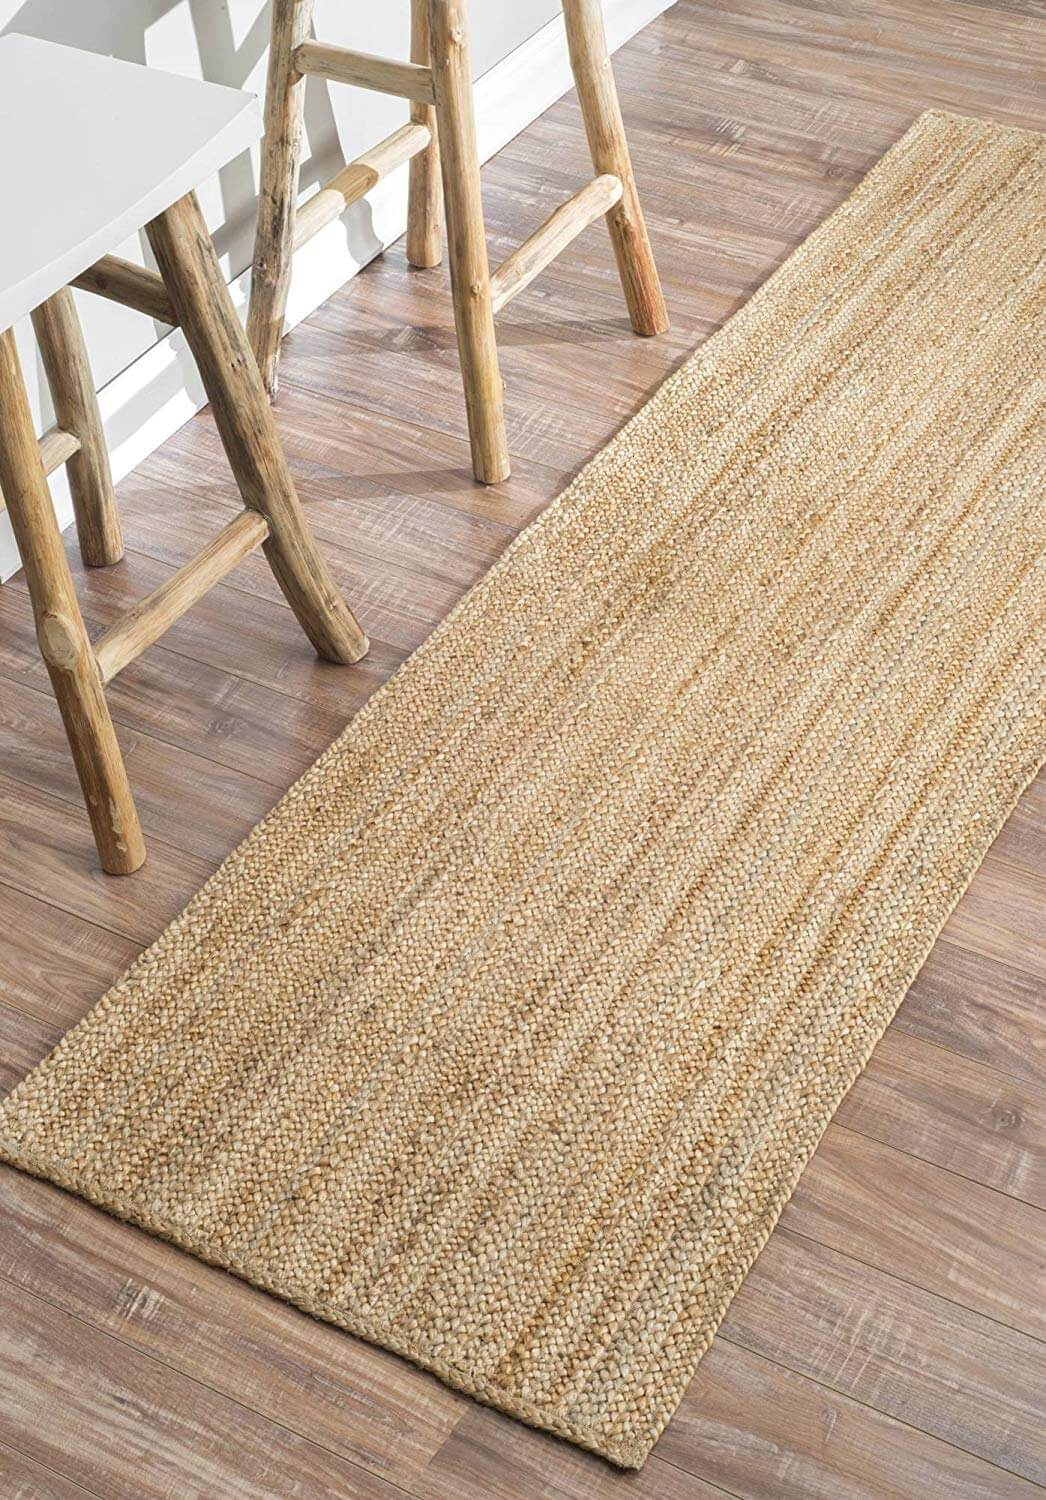 Thick Handwoven Wicker Runner Rug